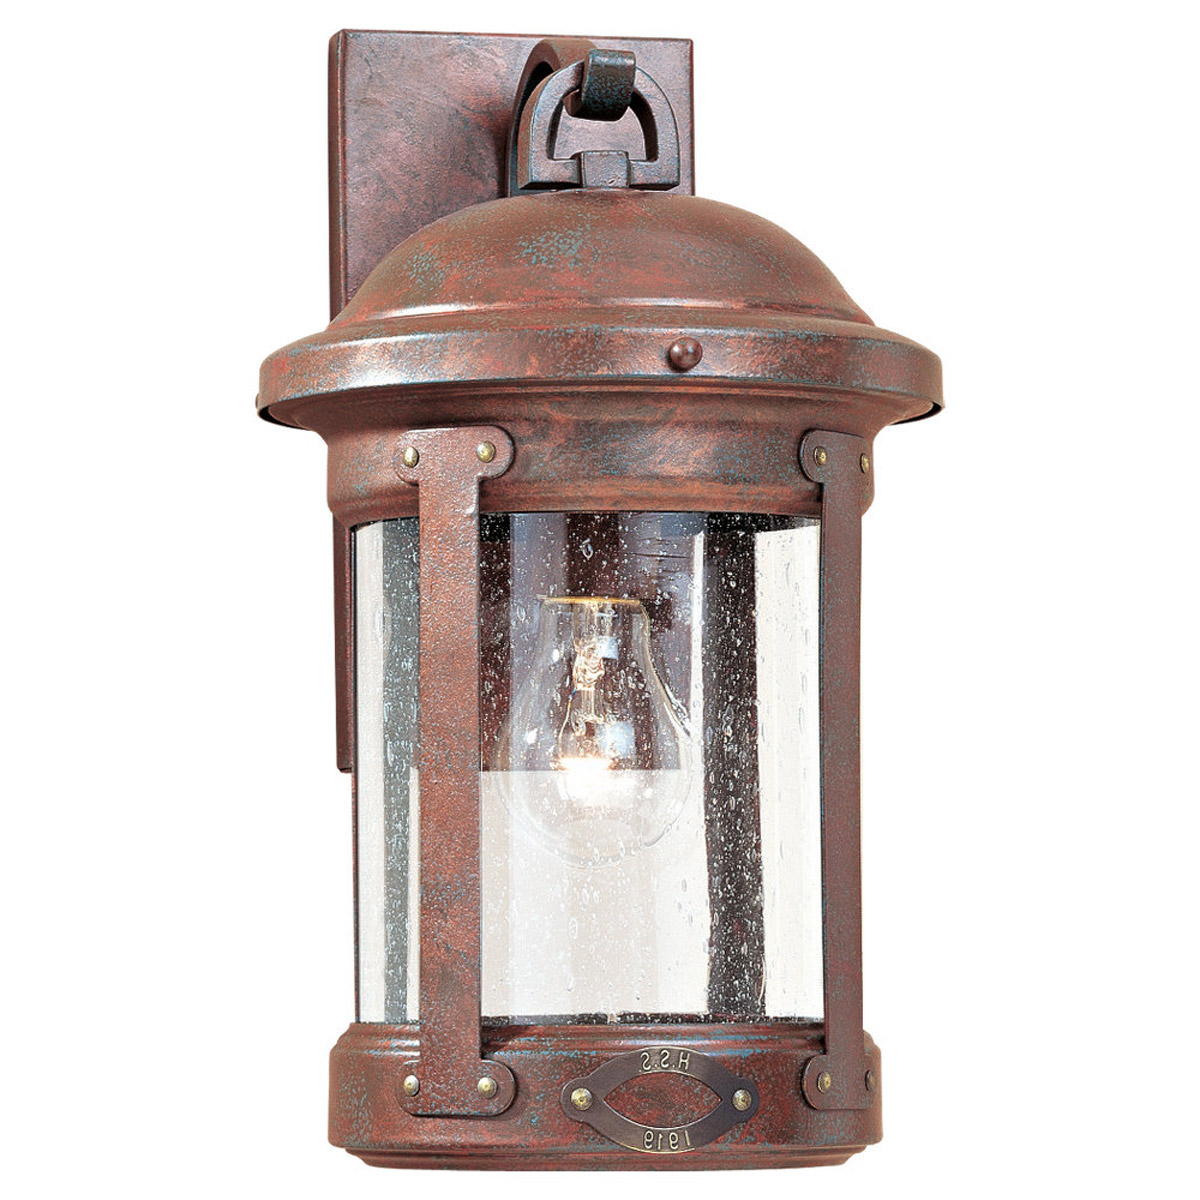 Sea Gull Lighting HSS CO-OP 1 Light Outdoor Wall Lantern in Weathered Copper 8440-44 photo